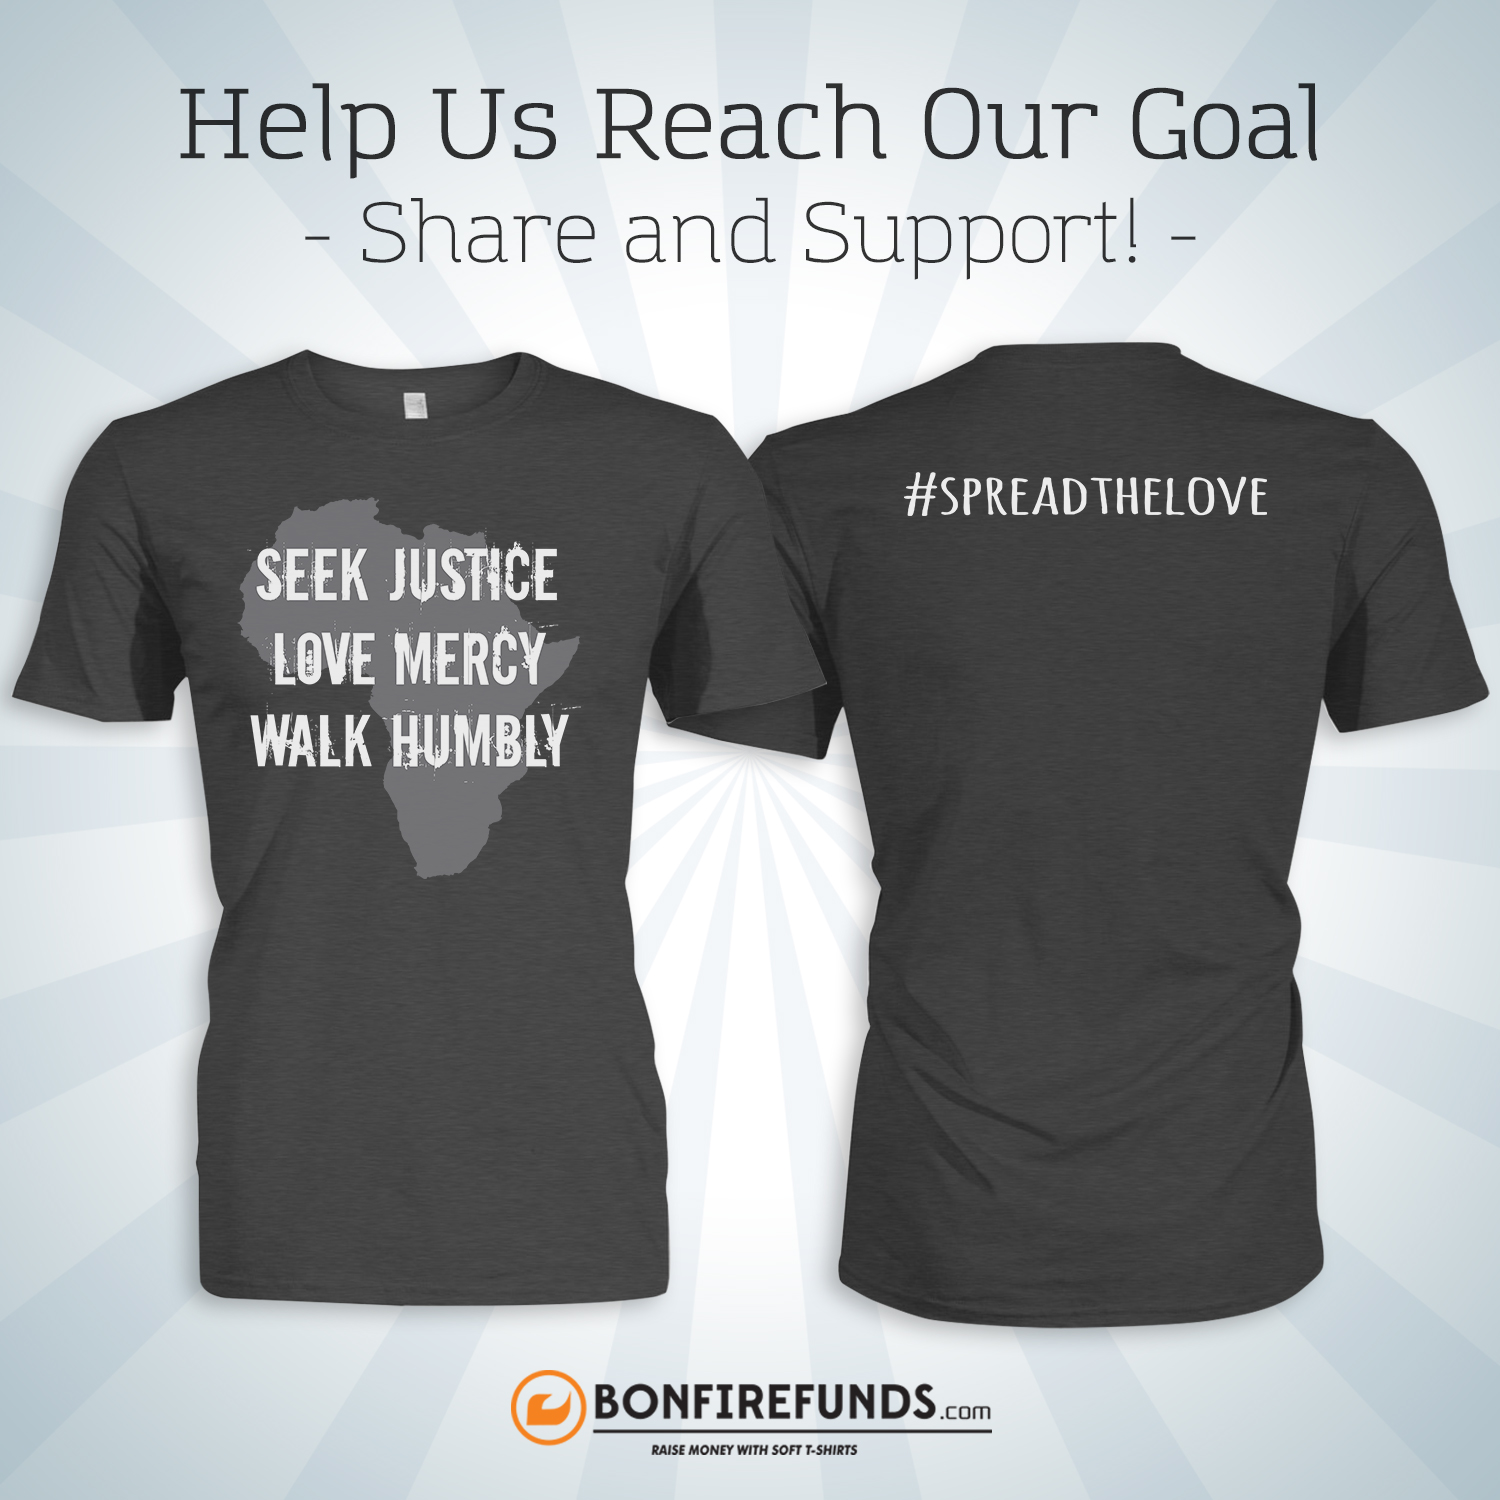 We have adoption t-shirts available for sale!